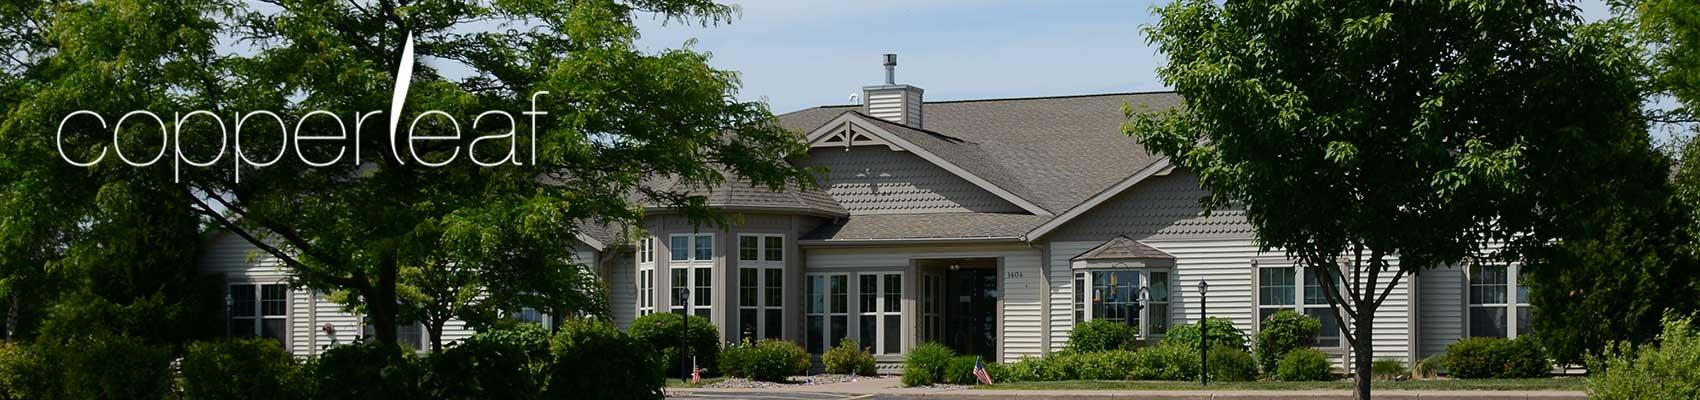 Assisted Living assisted living facilities Meehan Wisconsin Portage County